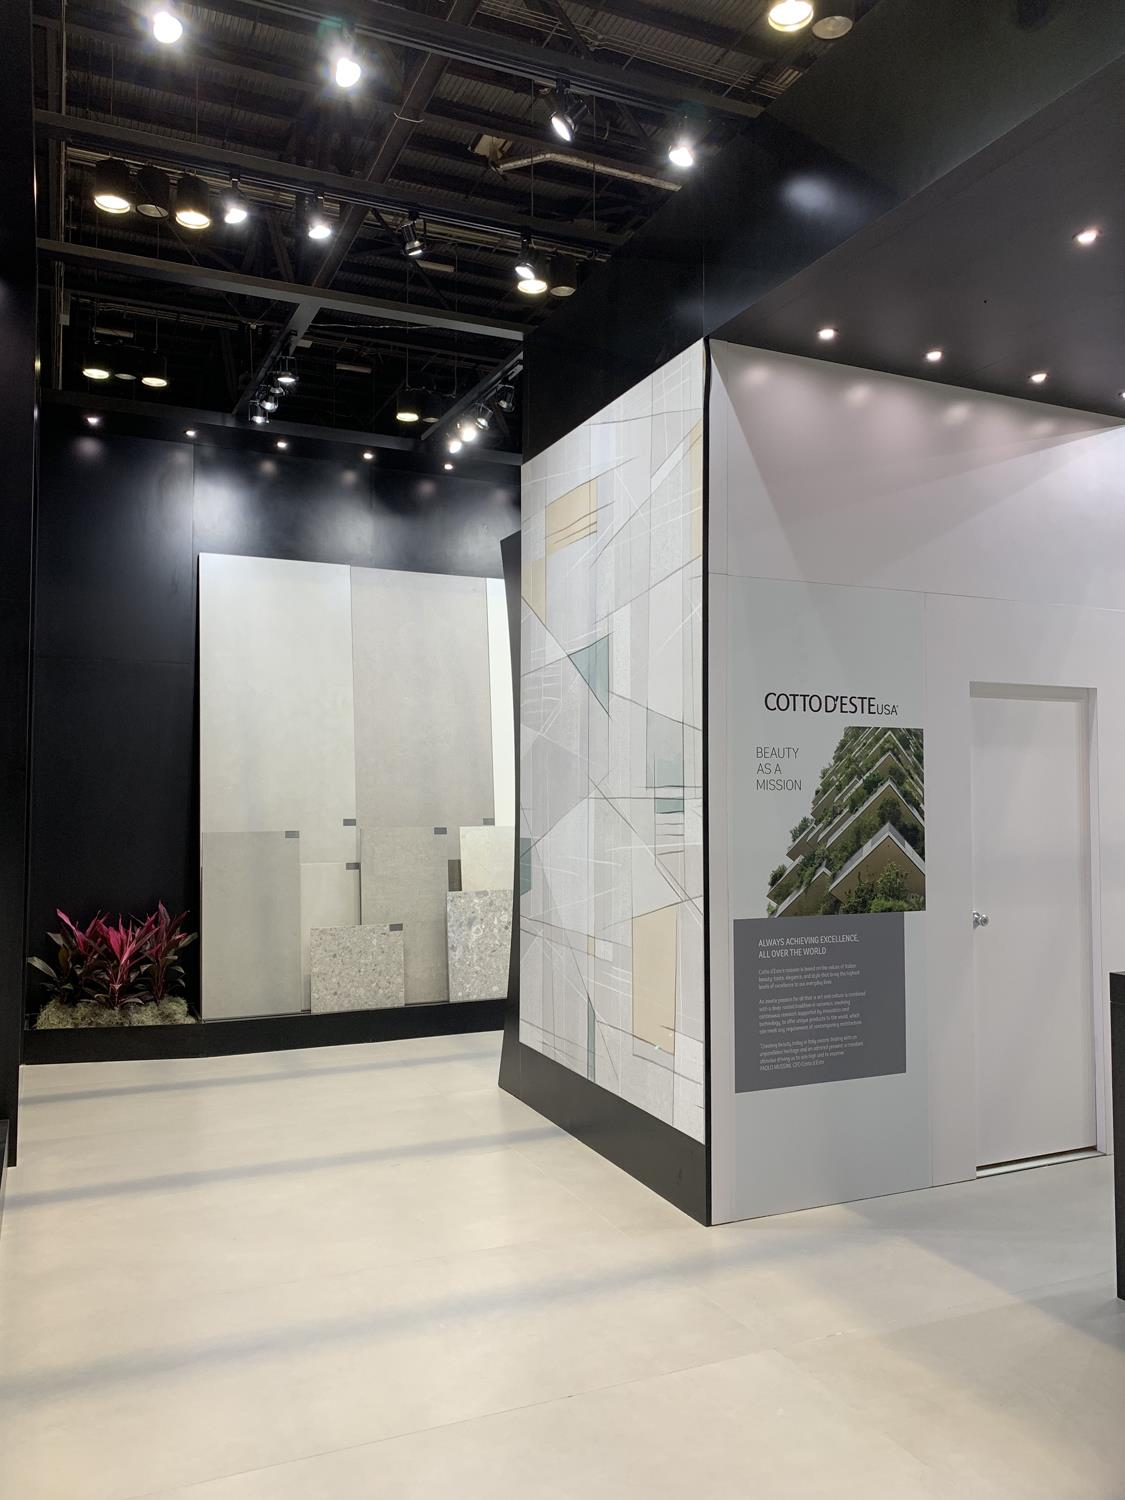 Cotto d'Este @ Coverings 2019: Foto 9